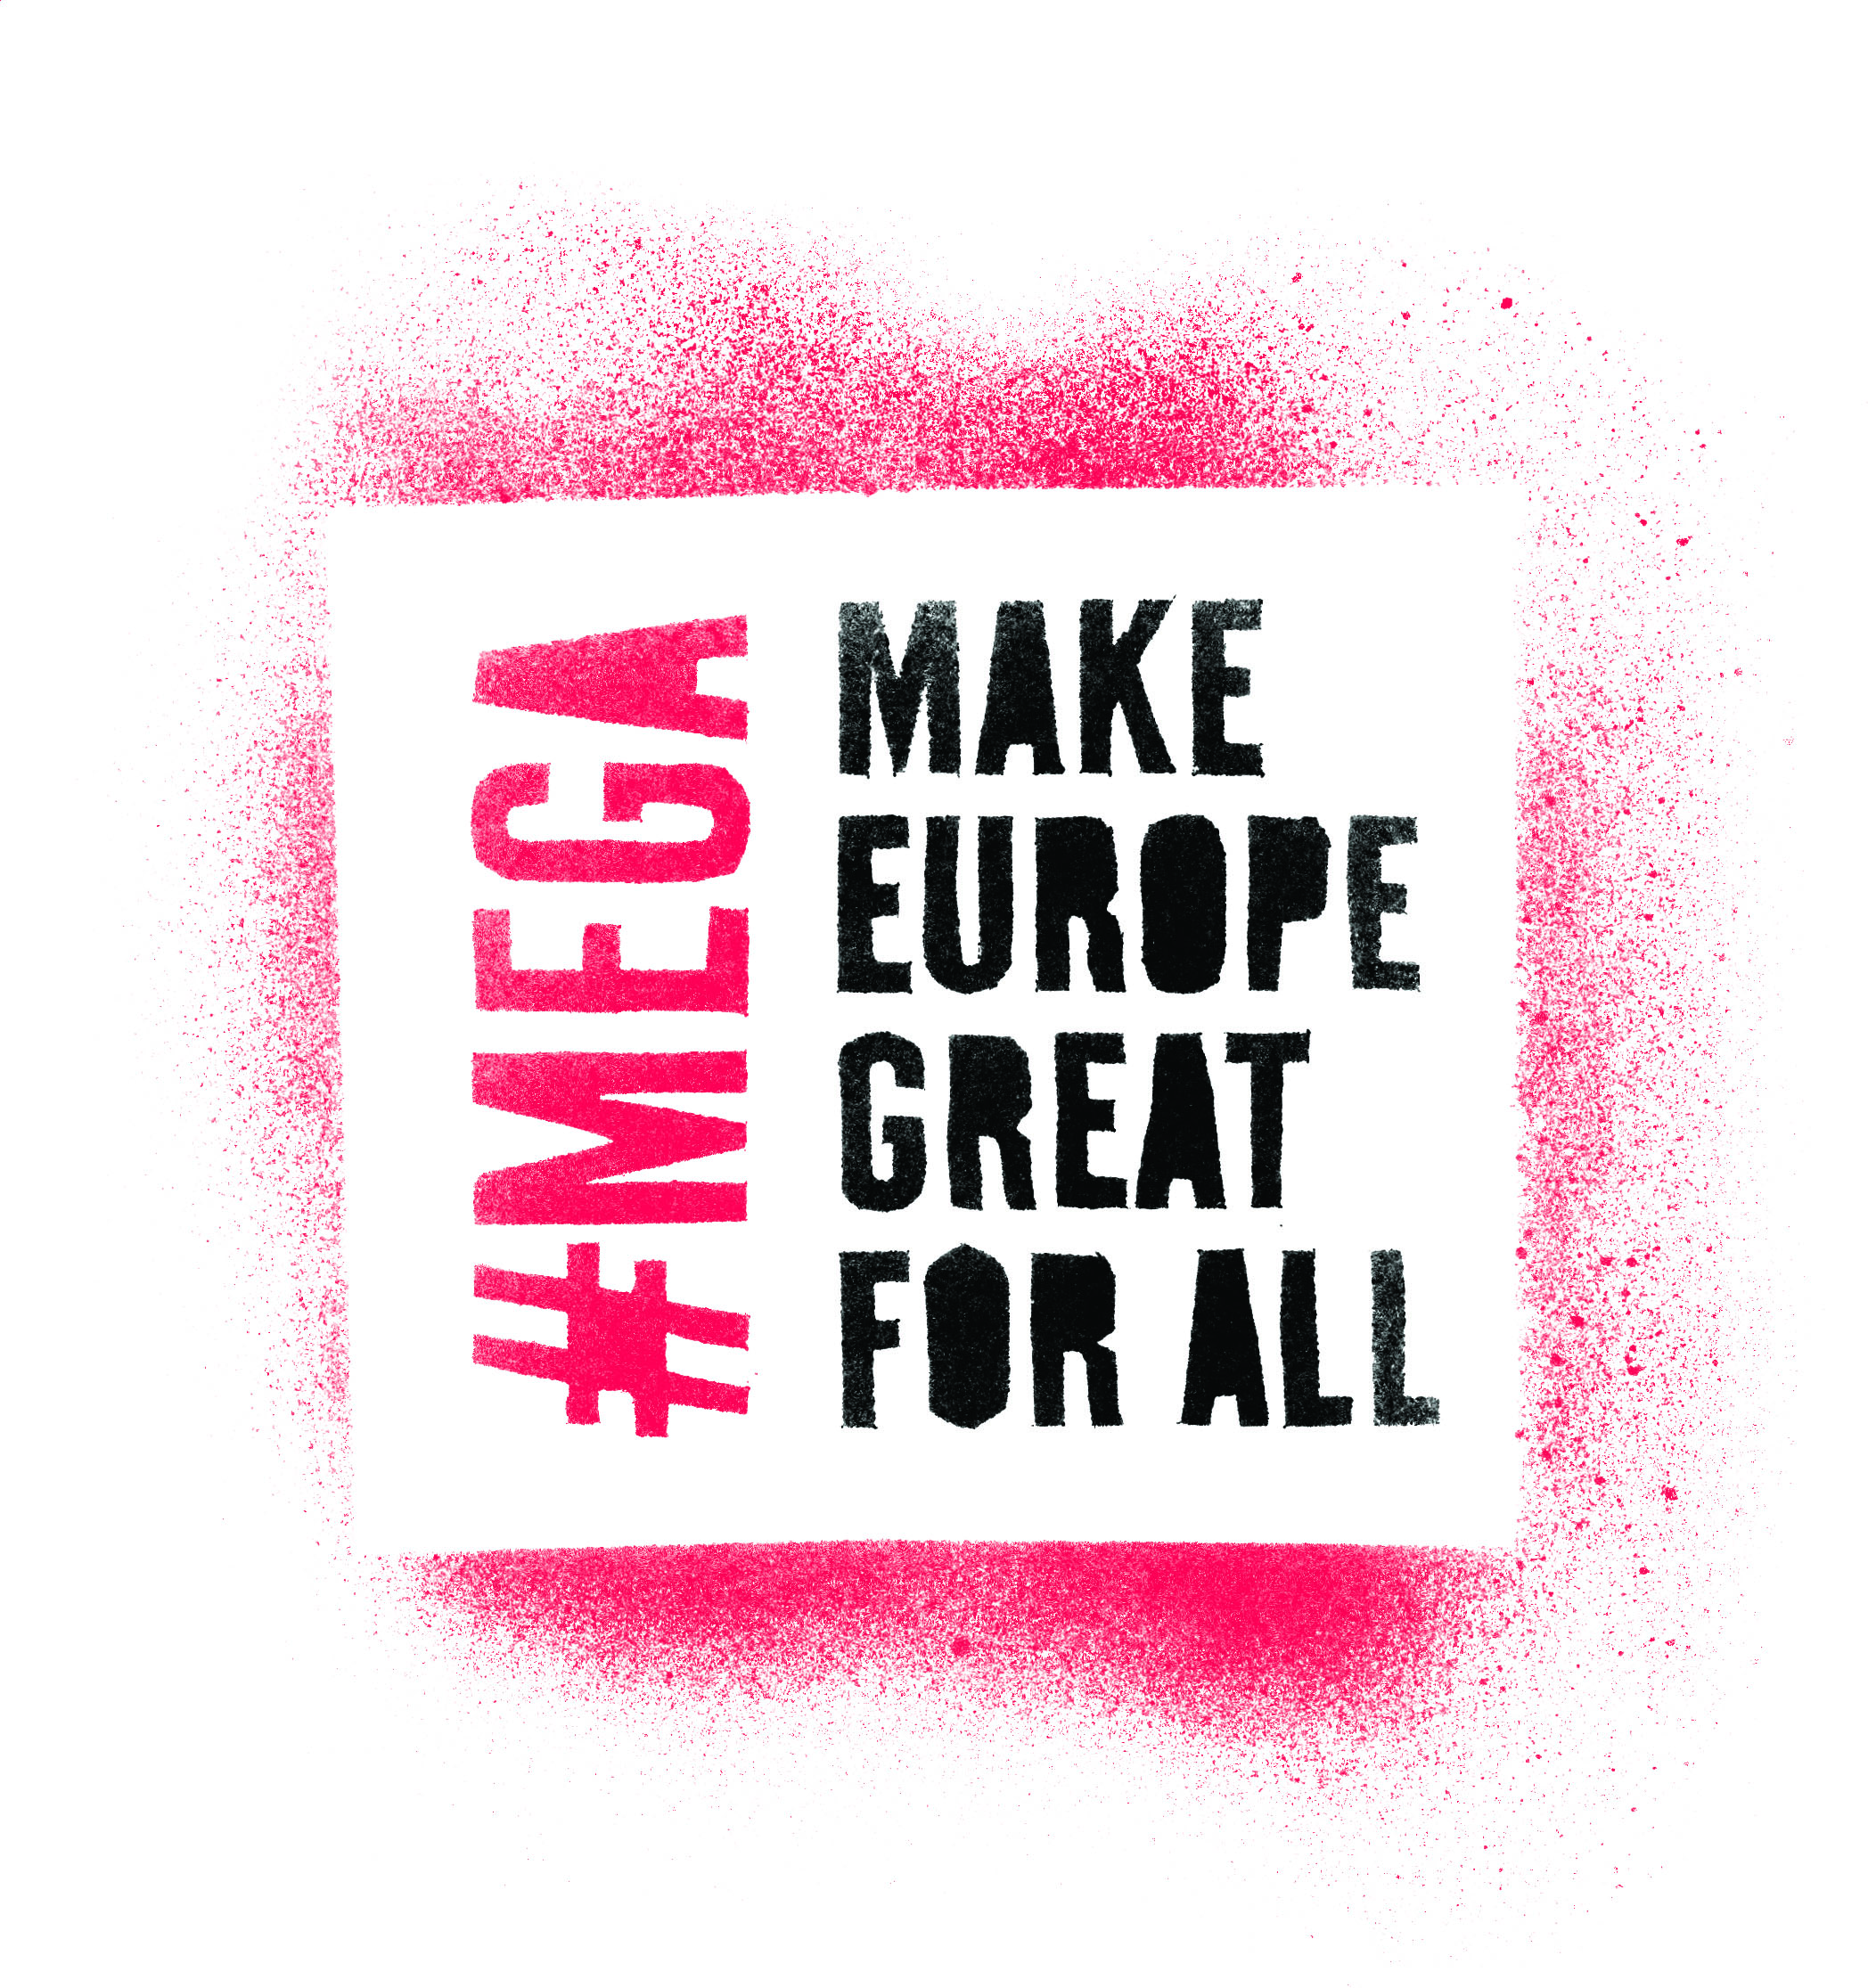 THE MEGA CAMPAIGN – Make Europe Great for All